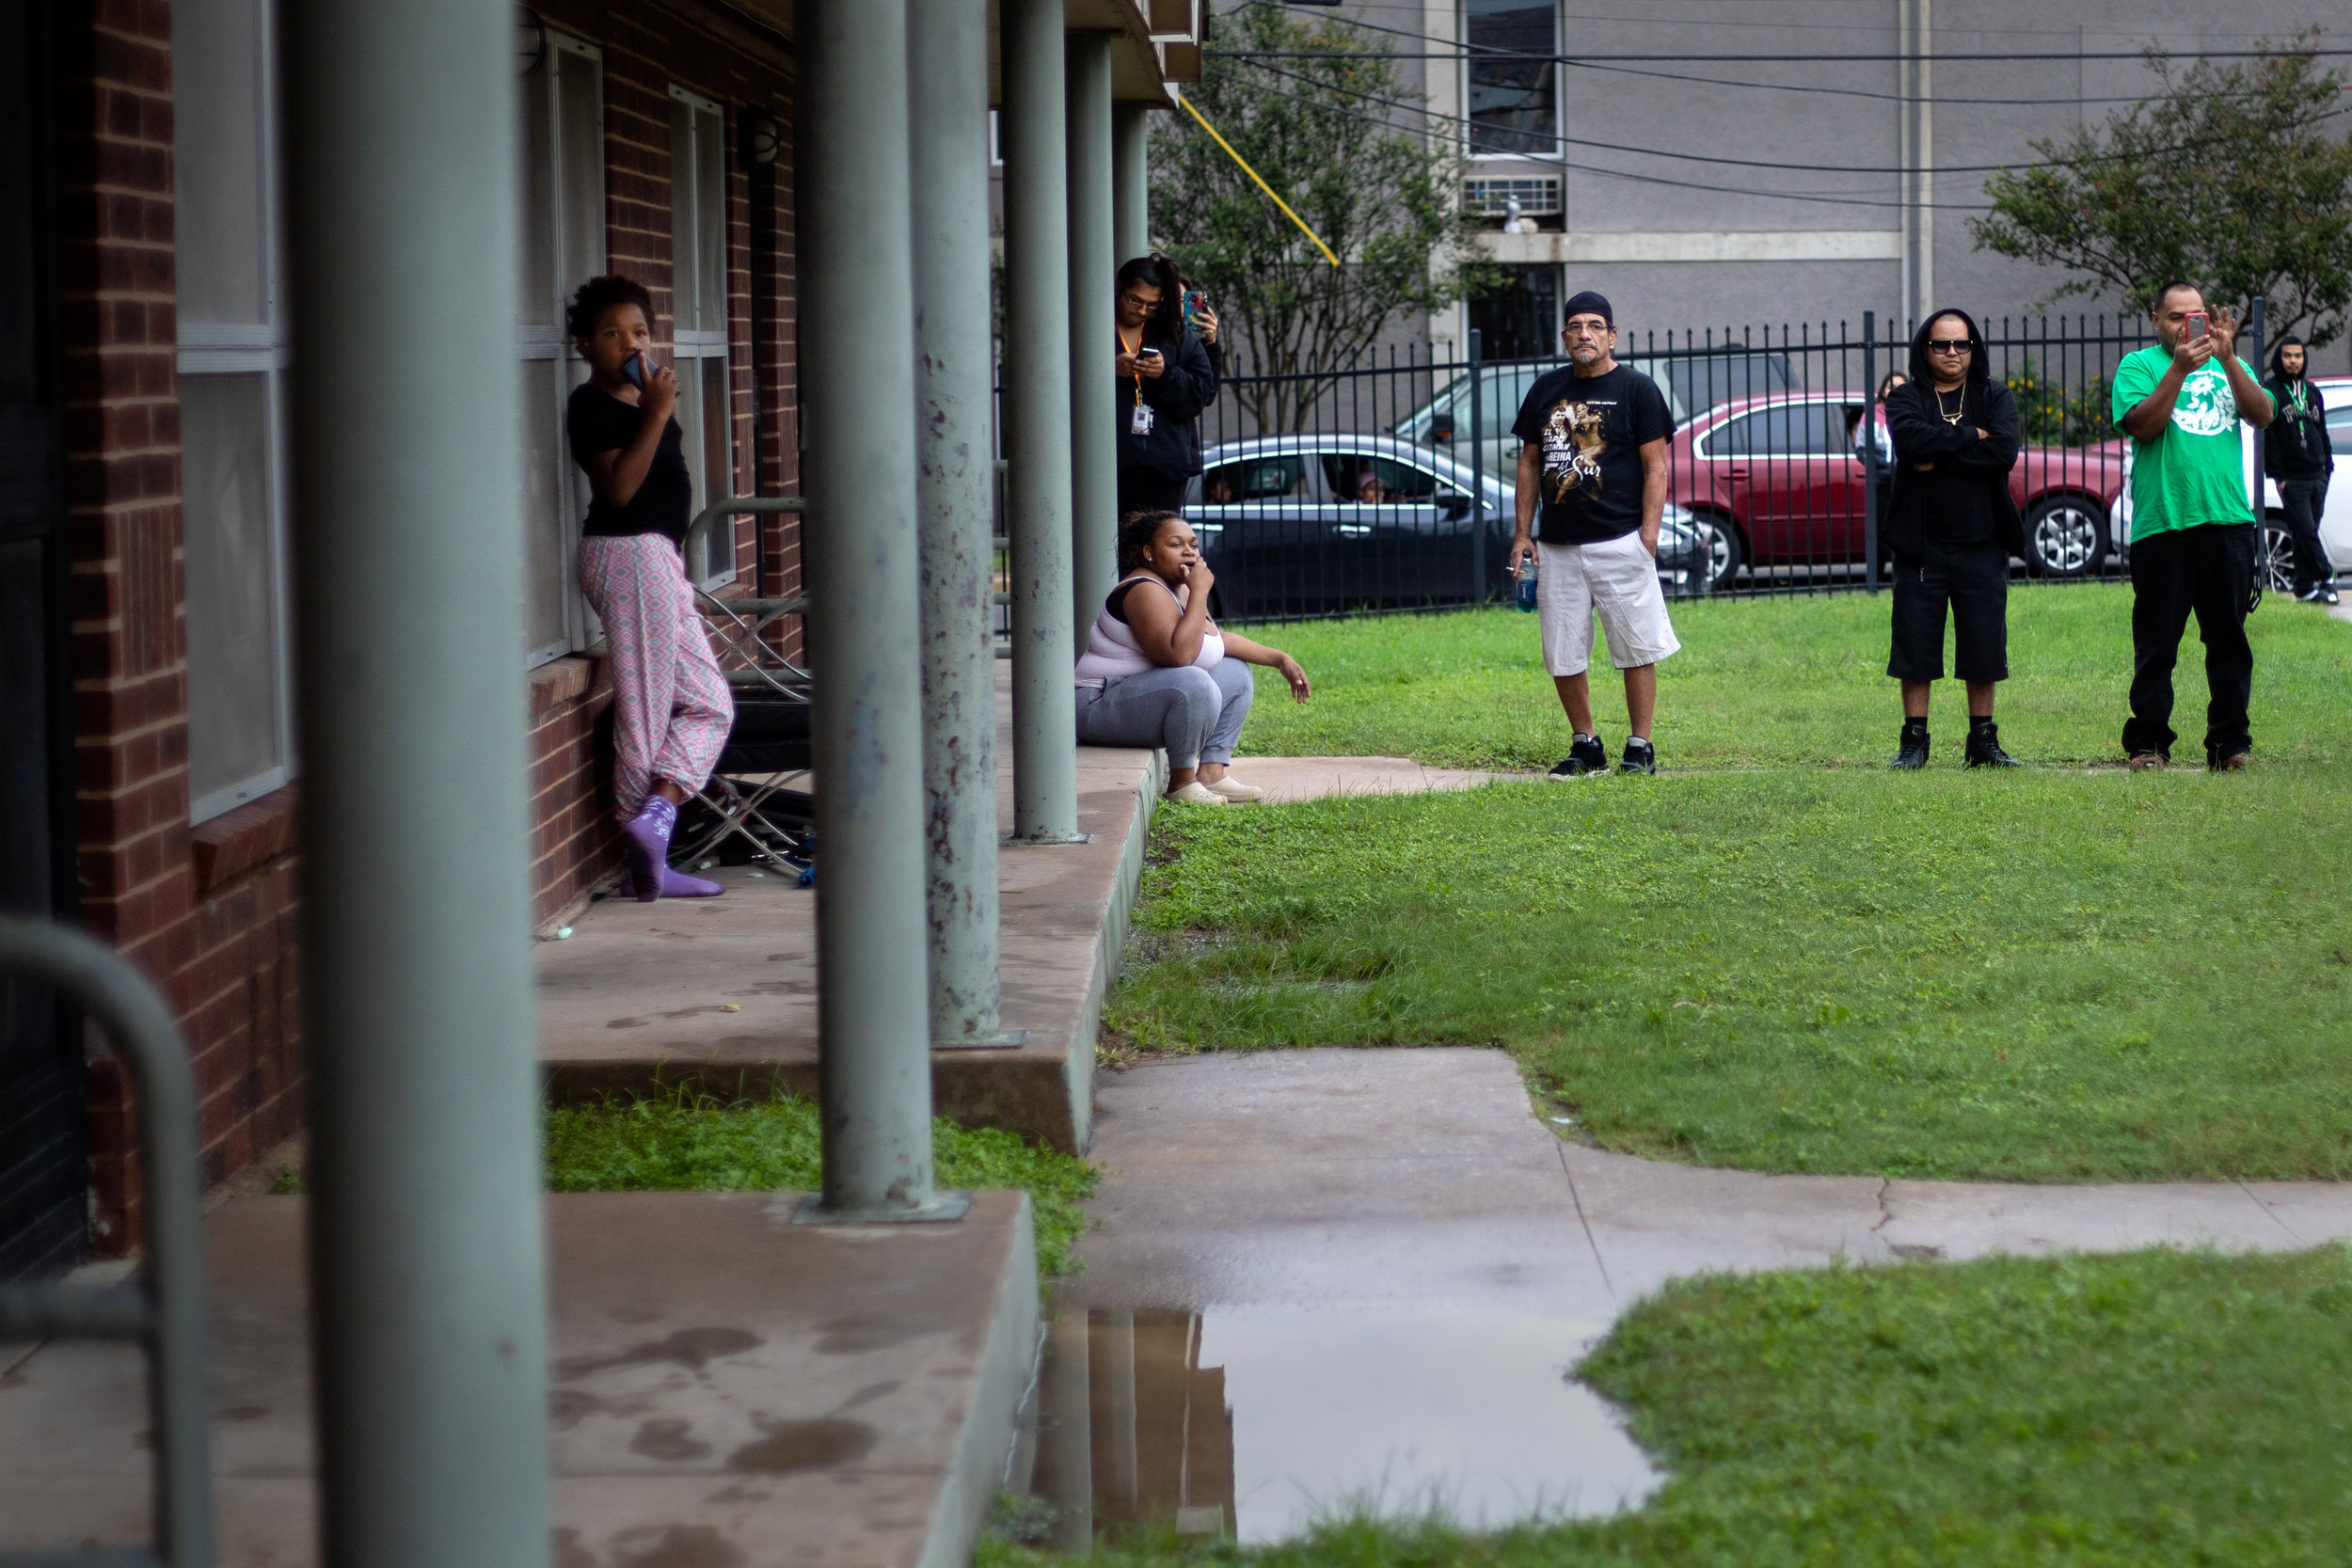 Residents watch an Austin Police Department SWAT team response to Booker T. Washington Terrace apartments on Oct. 19, 2018.